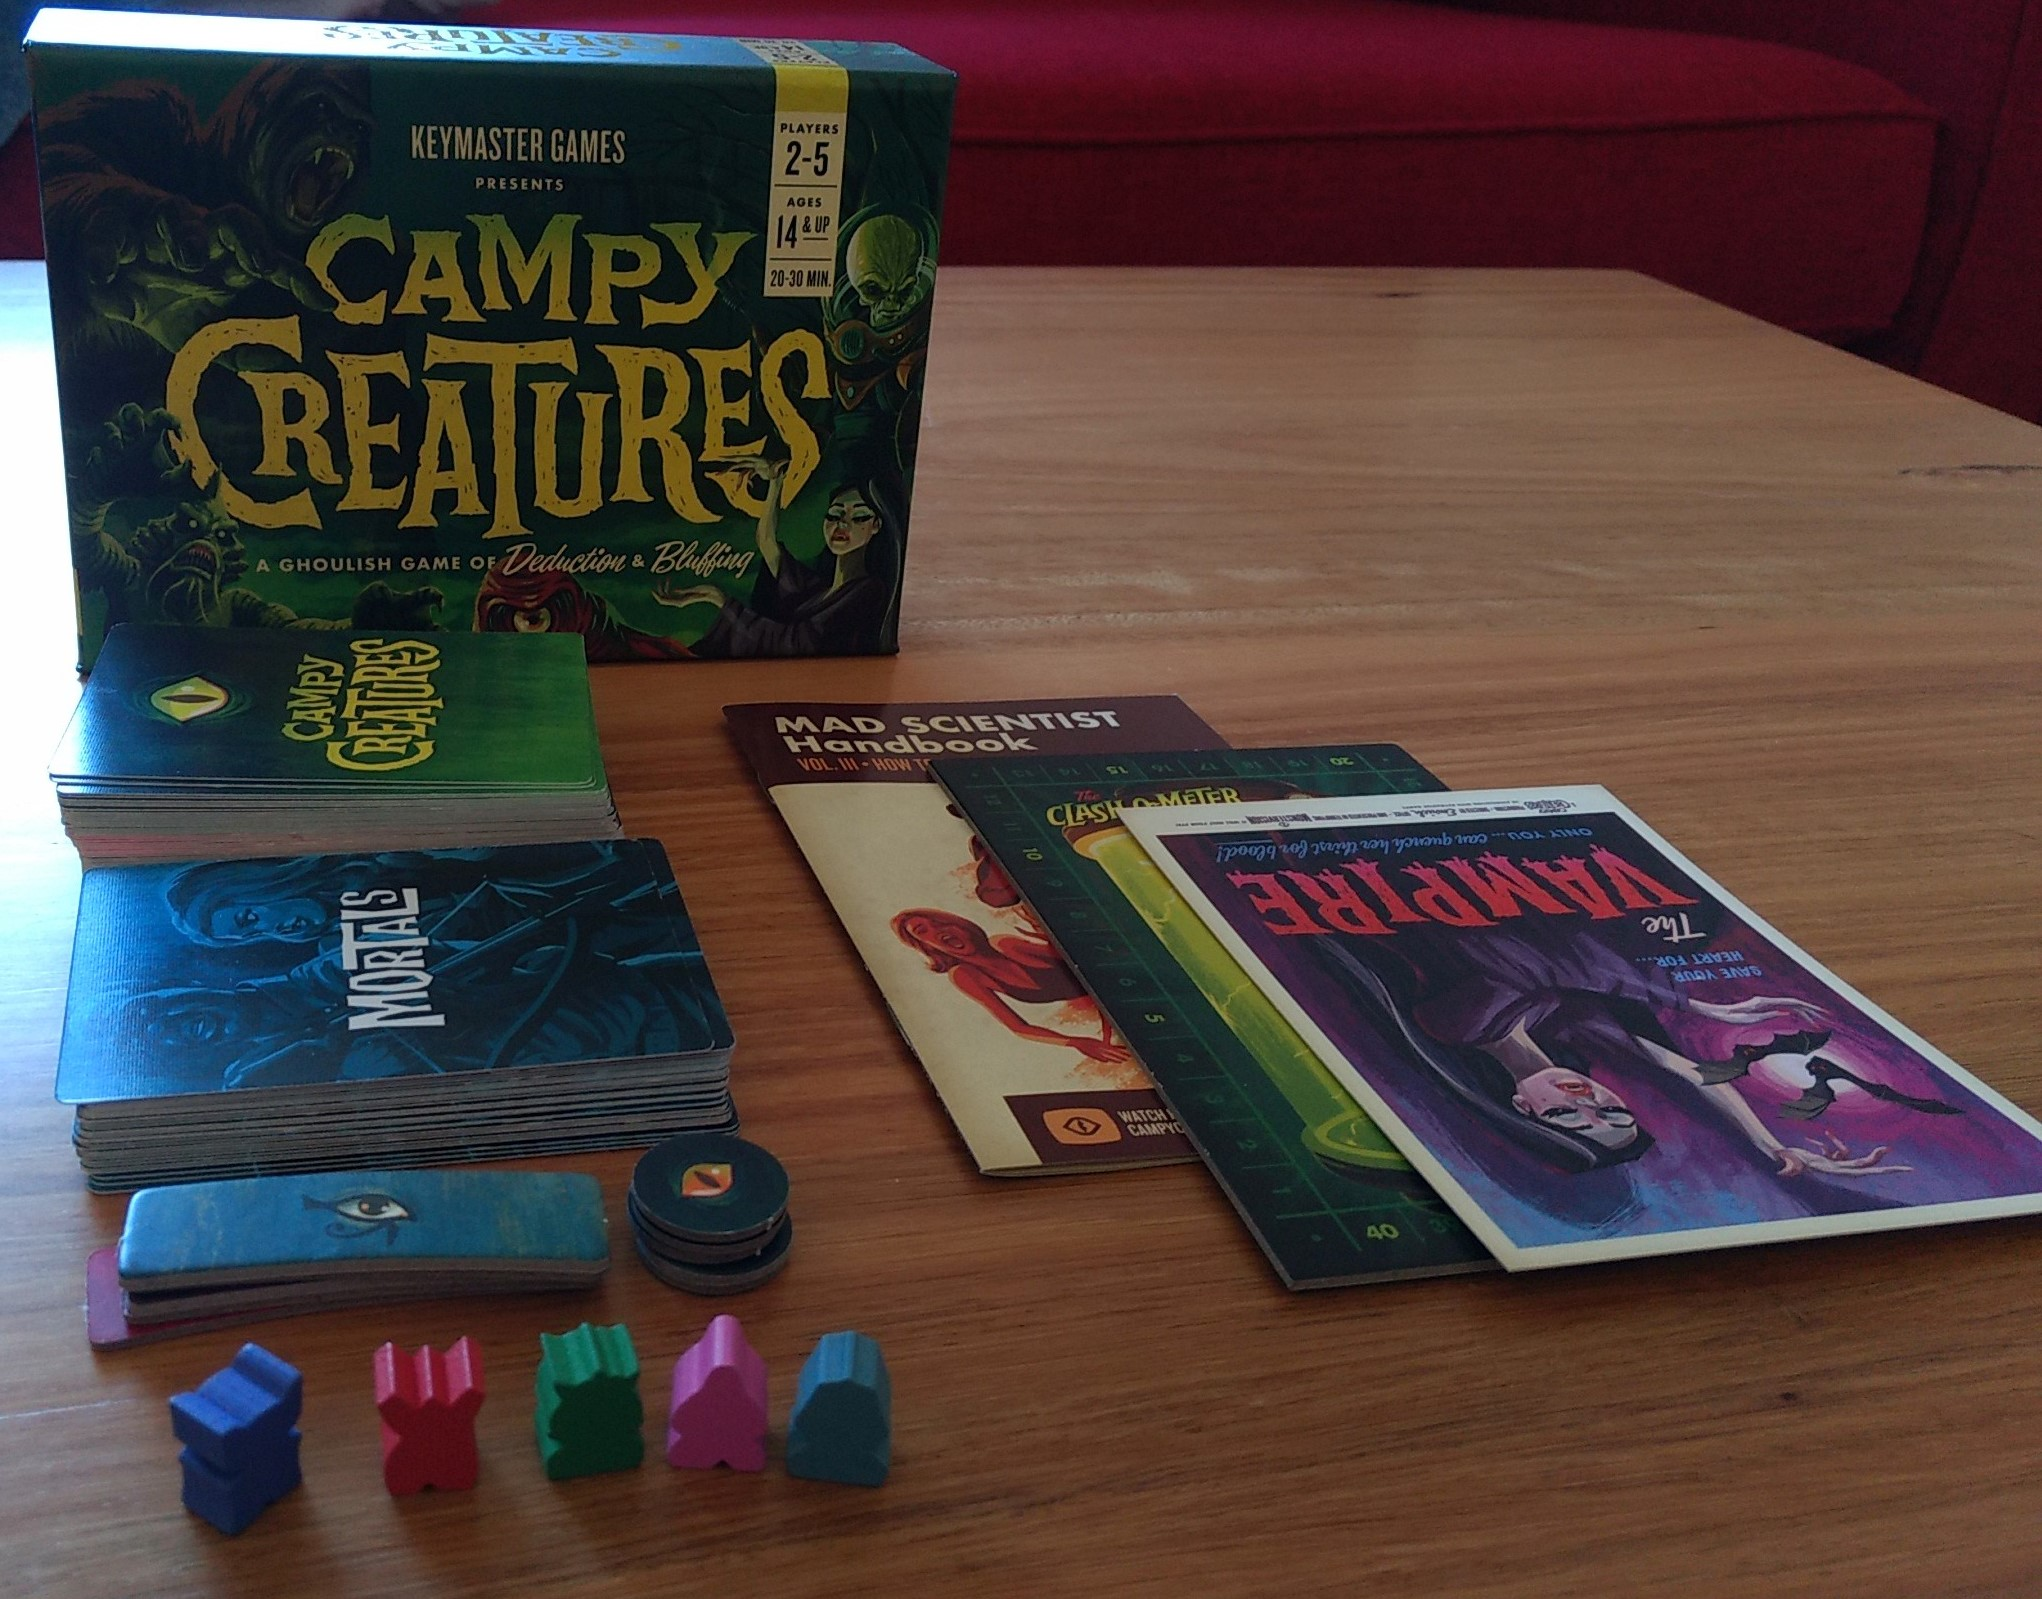 r2r-board-game-review-campy-creatures-components-1